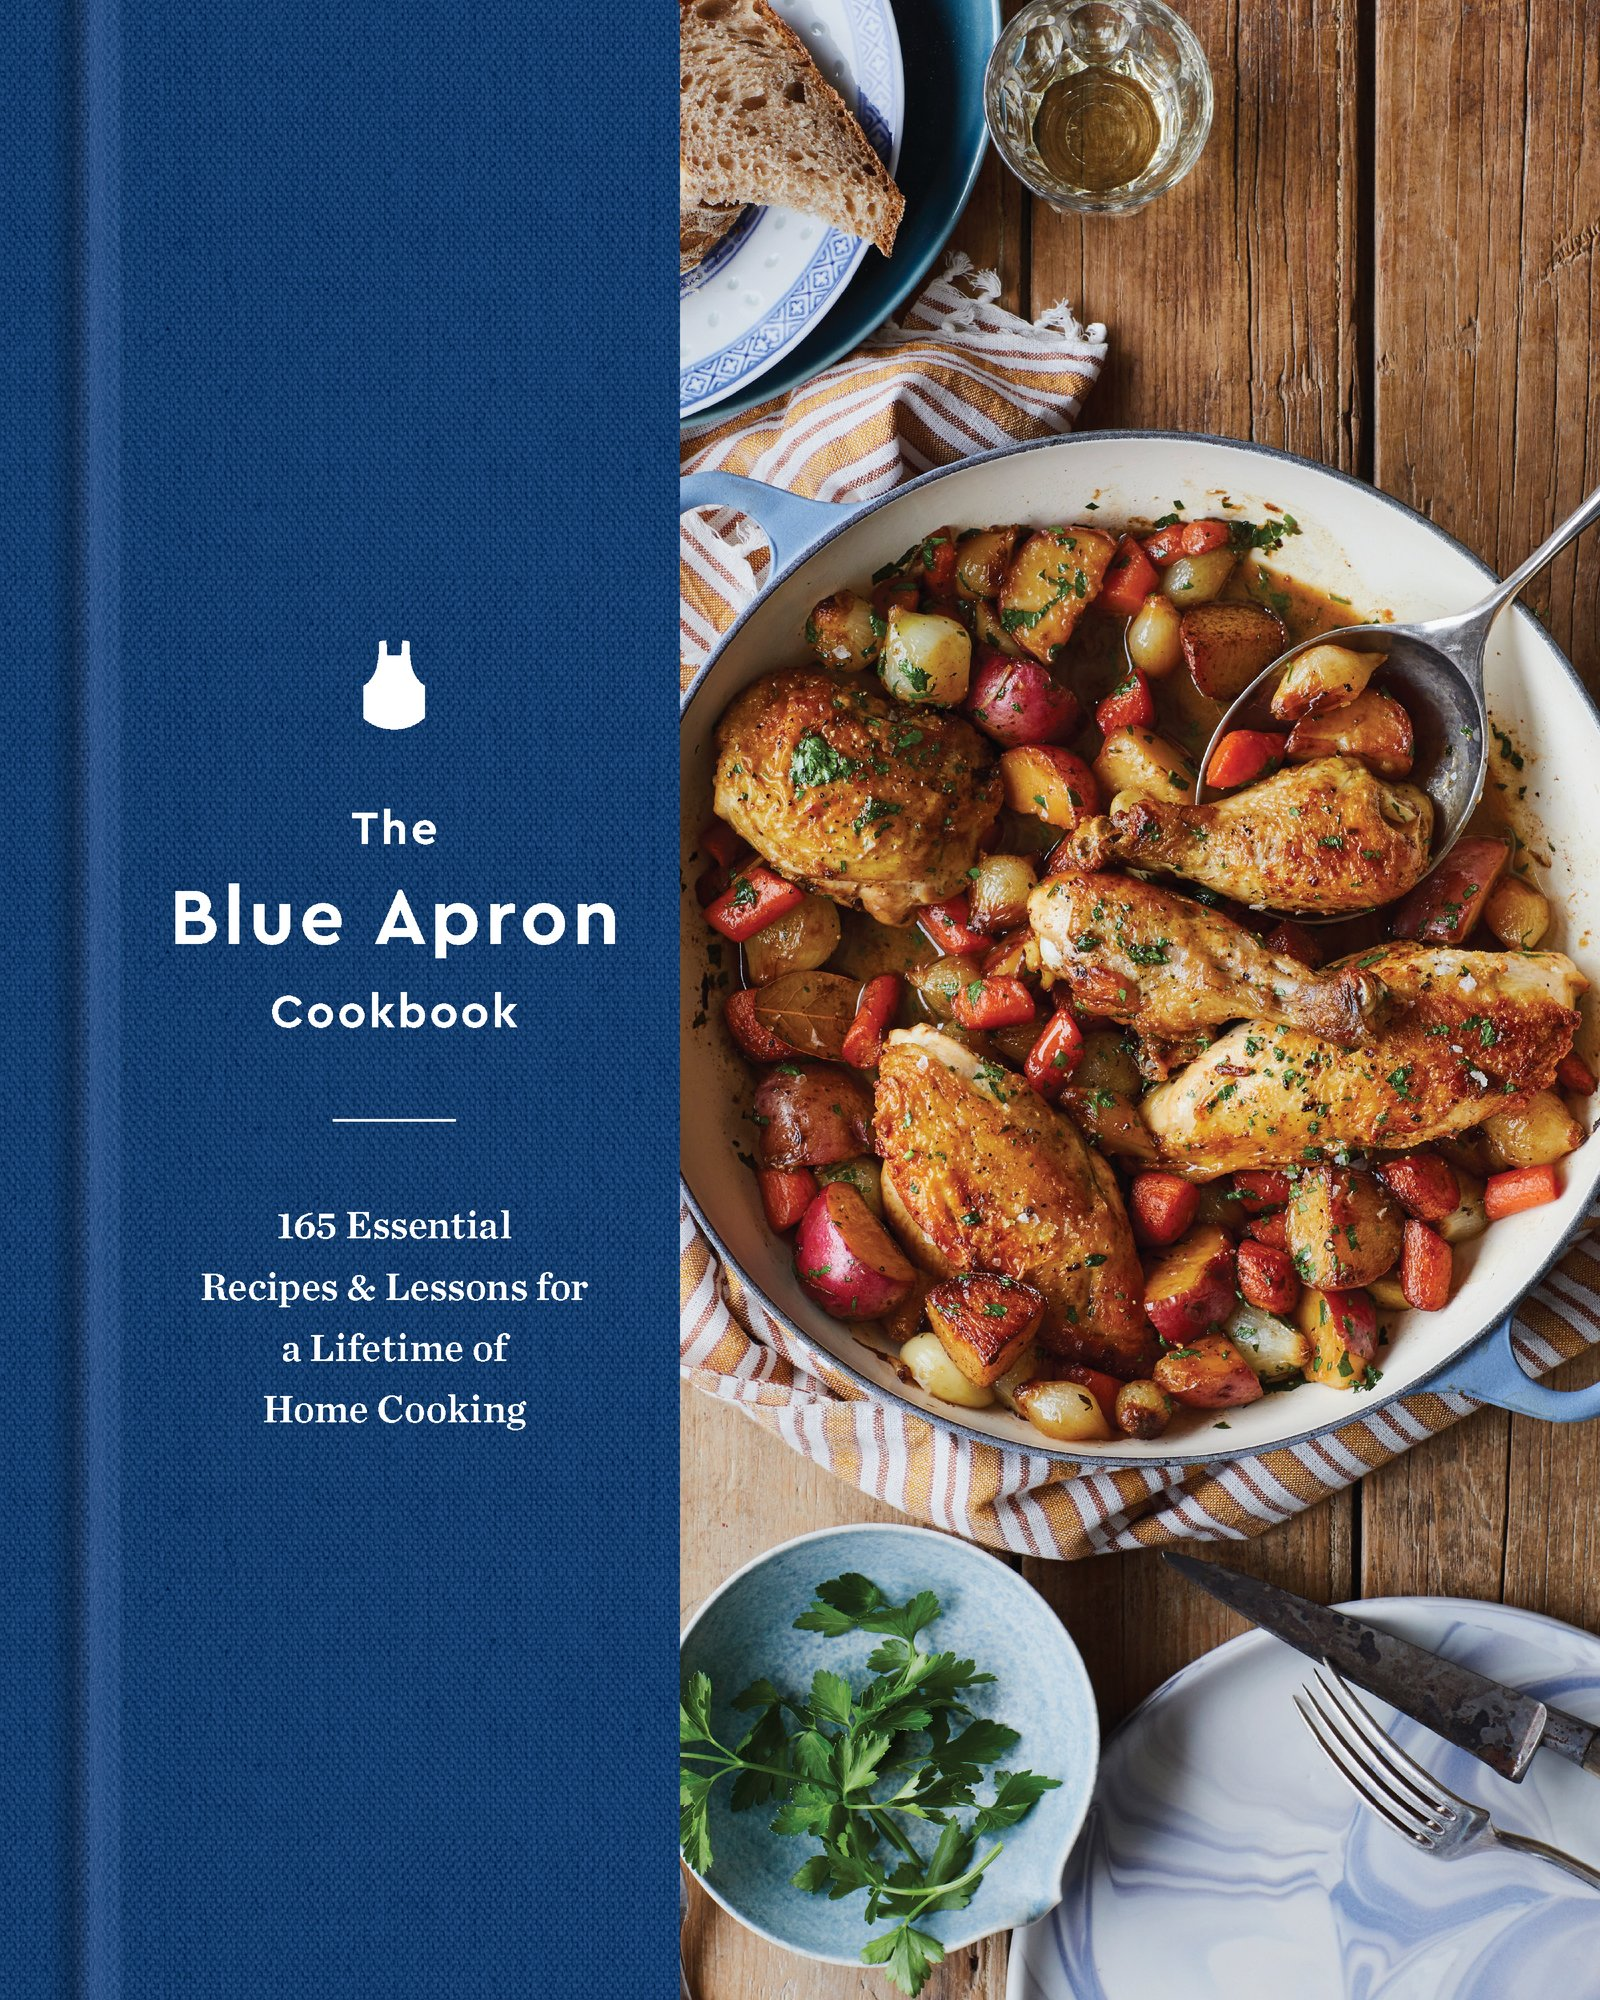 Blue apron working conditions - The Blue Apron Cookbook 165 Essential Recipes And Lessons For A Lifetime Of Home Cooking Blue Apron Culinary Team 9780062562760 Amazon Com Books